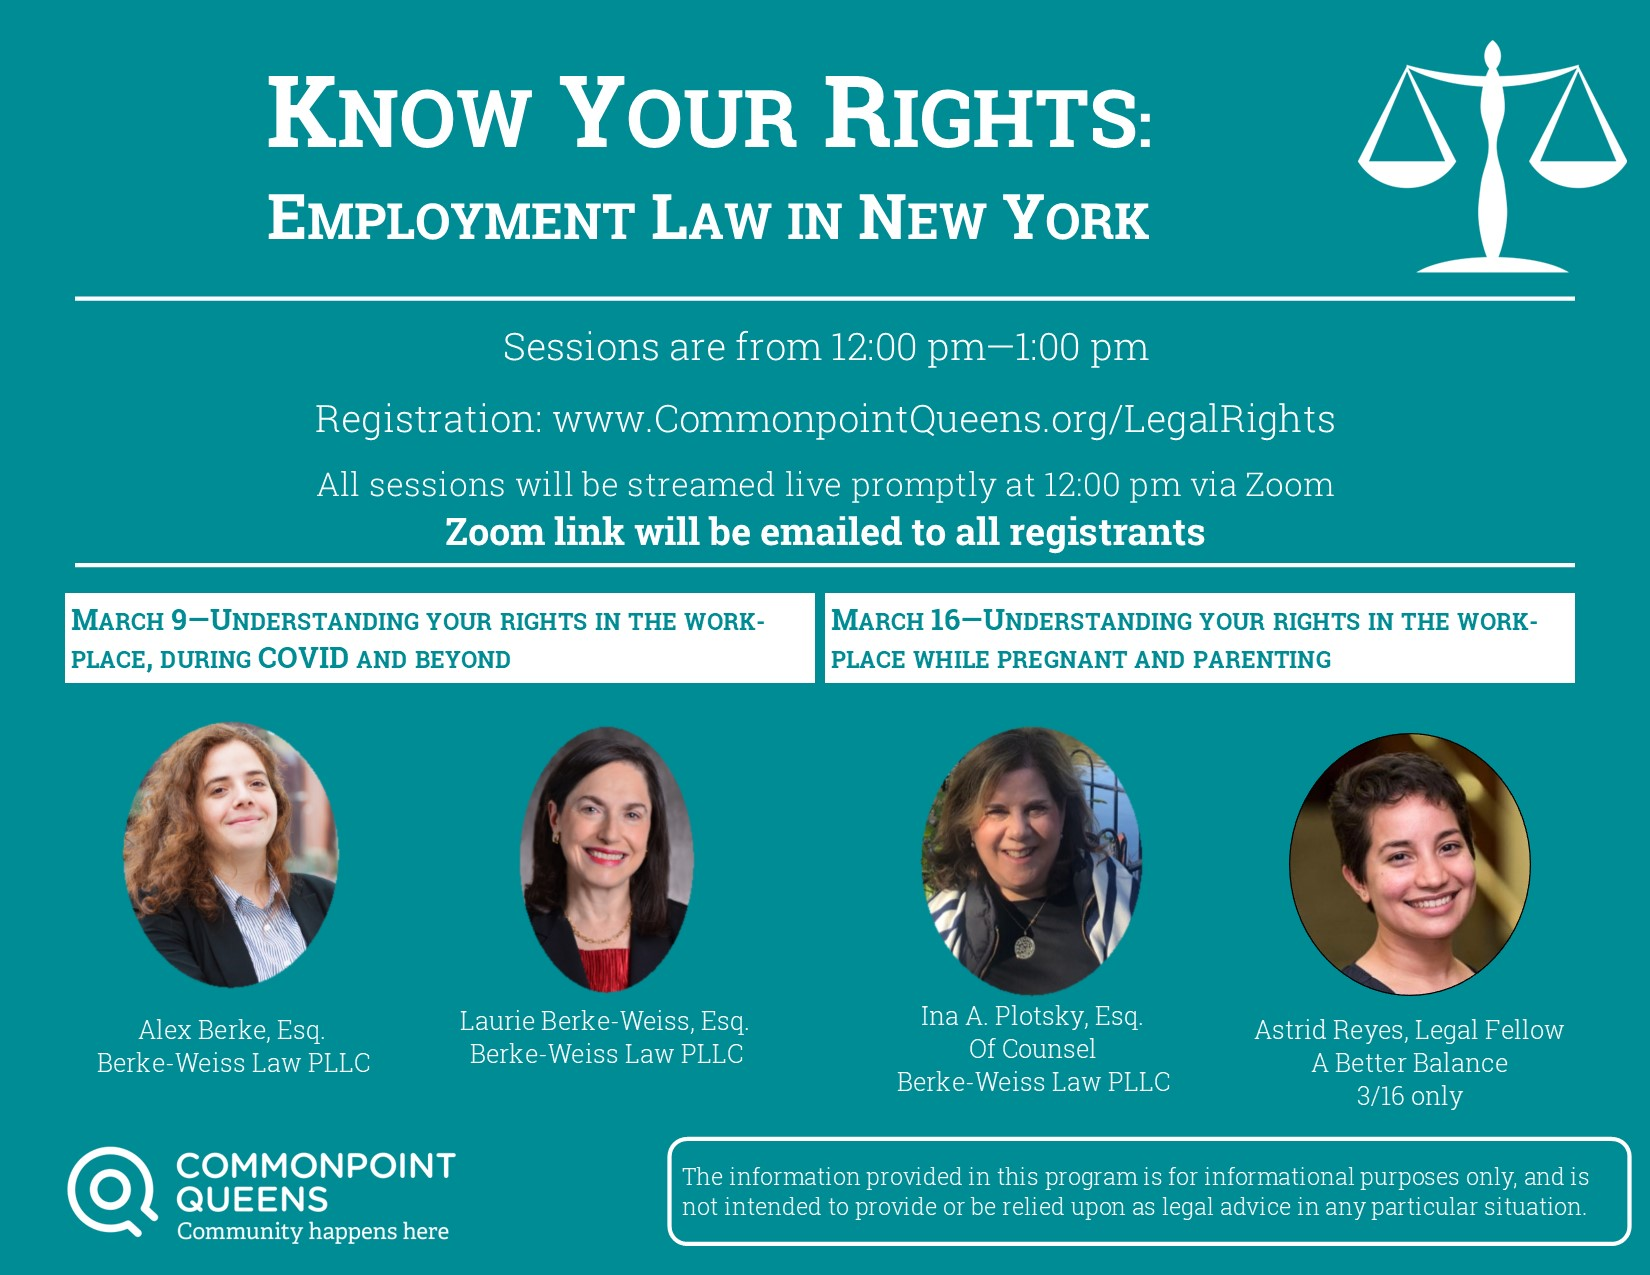 Know Your Rights: Employment Law in New York